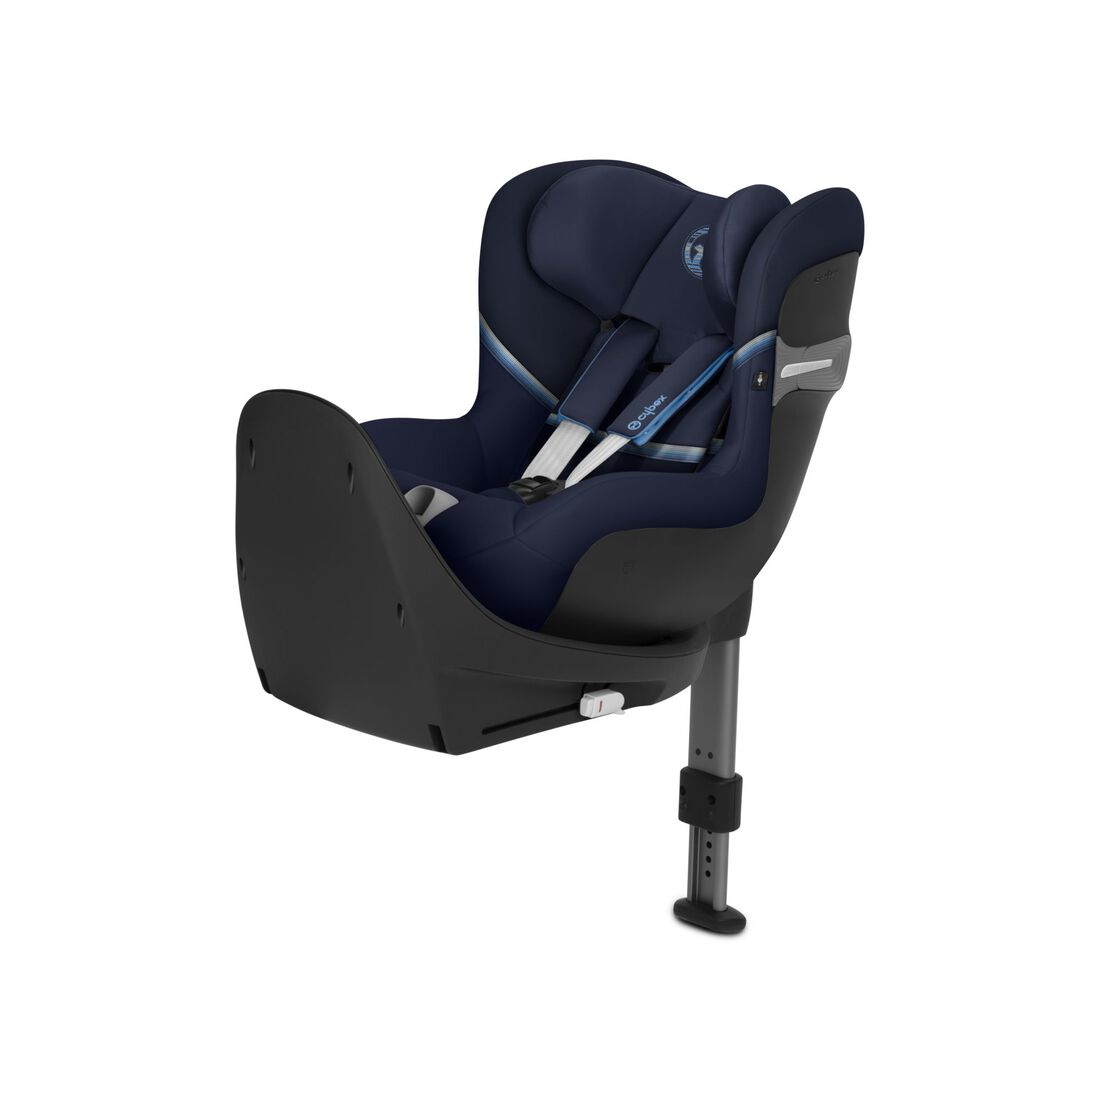 CYBEX Sirona S i-Size - Navy Blue in Navy Blue large image number 1